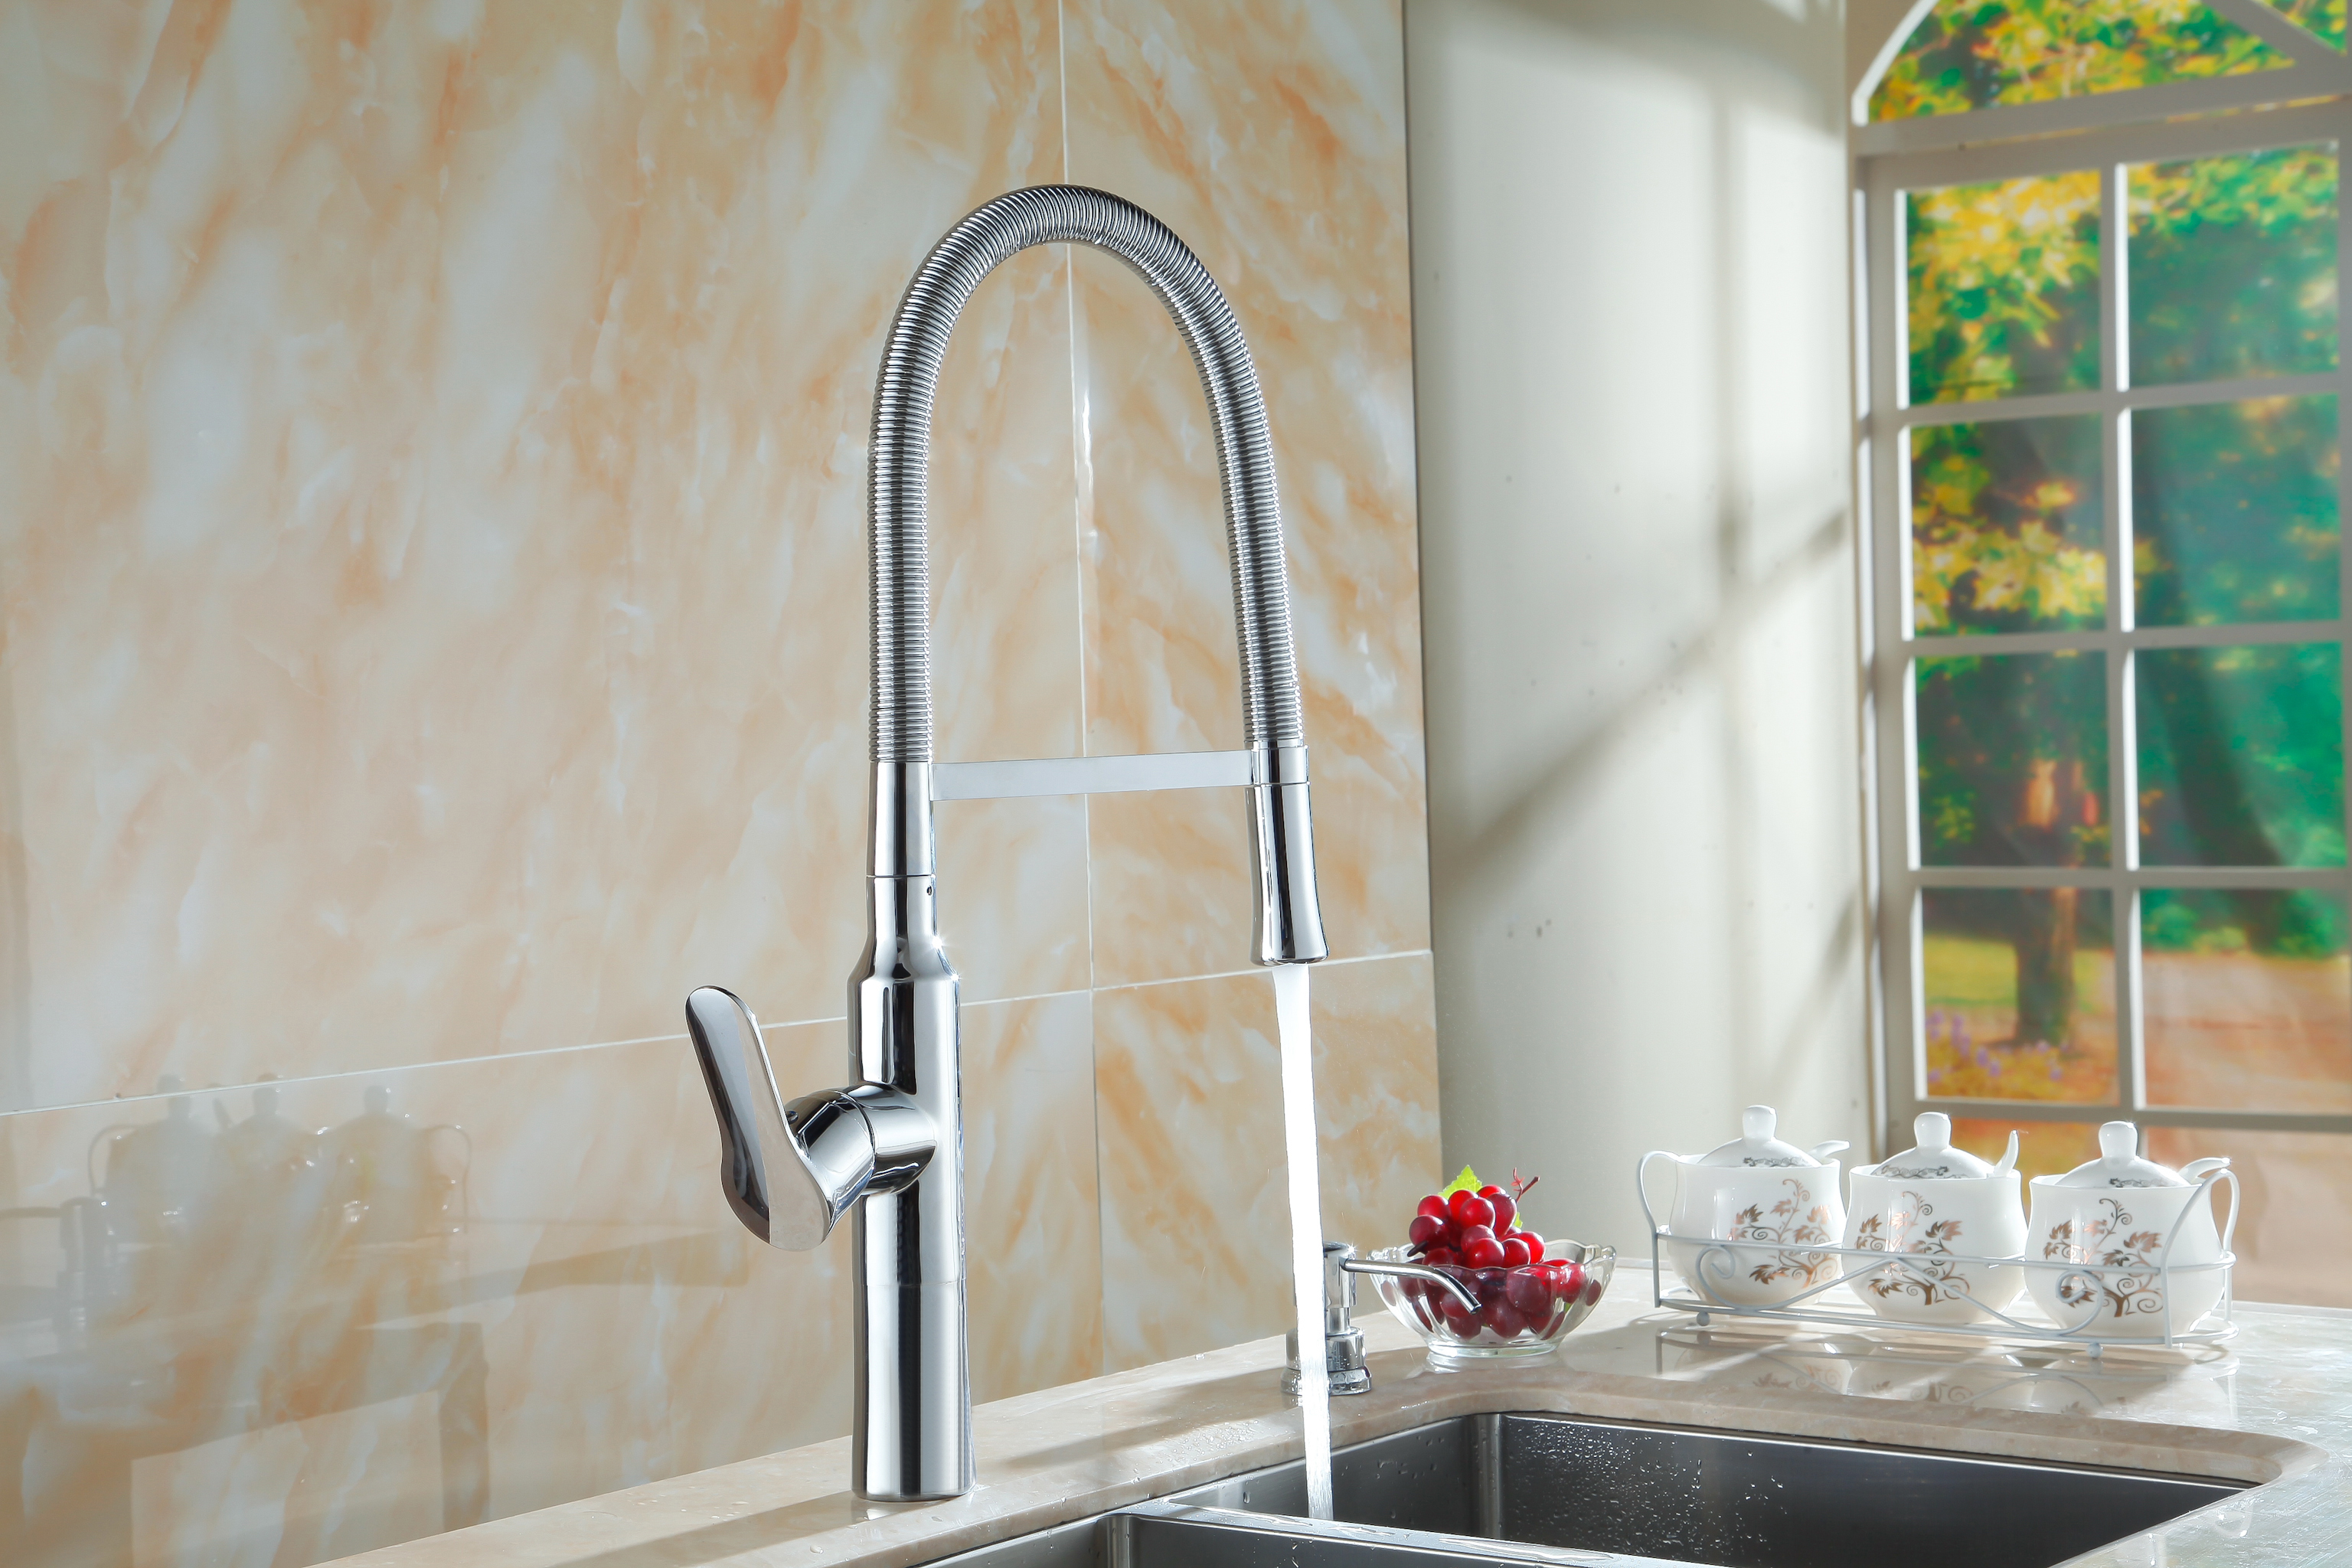 kitchen water faucet framed prints for kitchens 温州市厨房水龙头啤酒瓶加密弹簧龙头厂家 008啤酒瓶加密弹簧龙头厂家直销 008啤酒瓶加密弹簧龙头厂家直销厨房水龙头啤酒瓶加密弹簧龙头